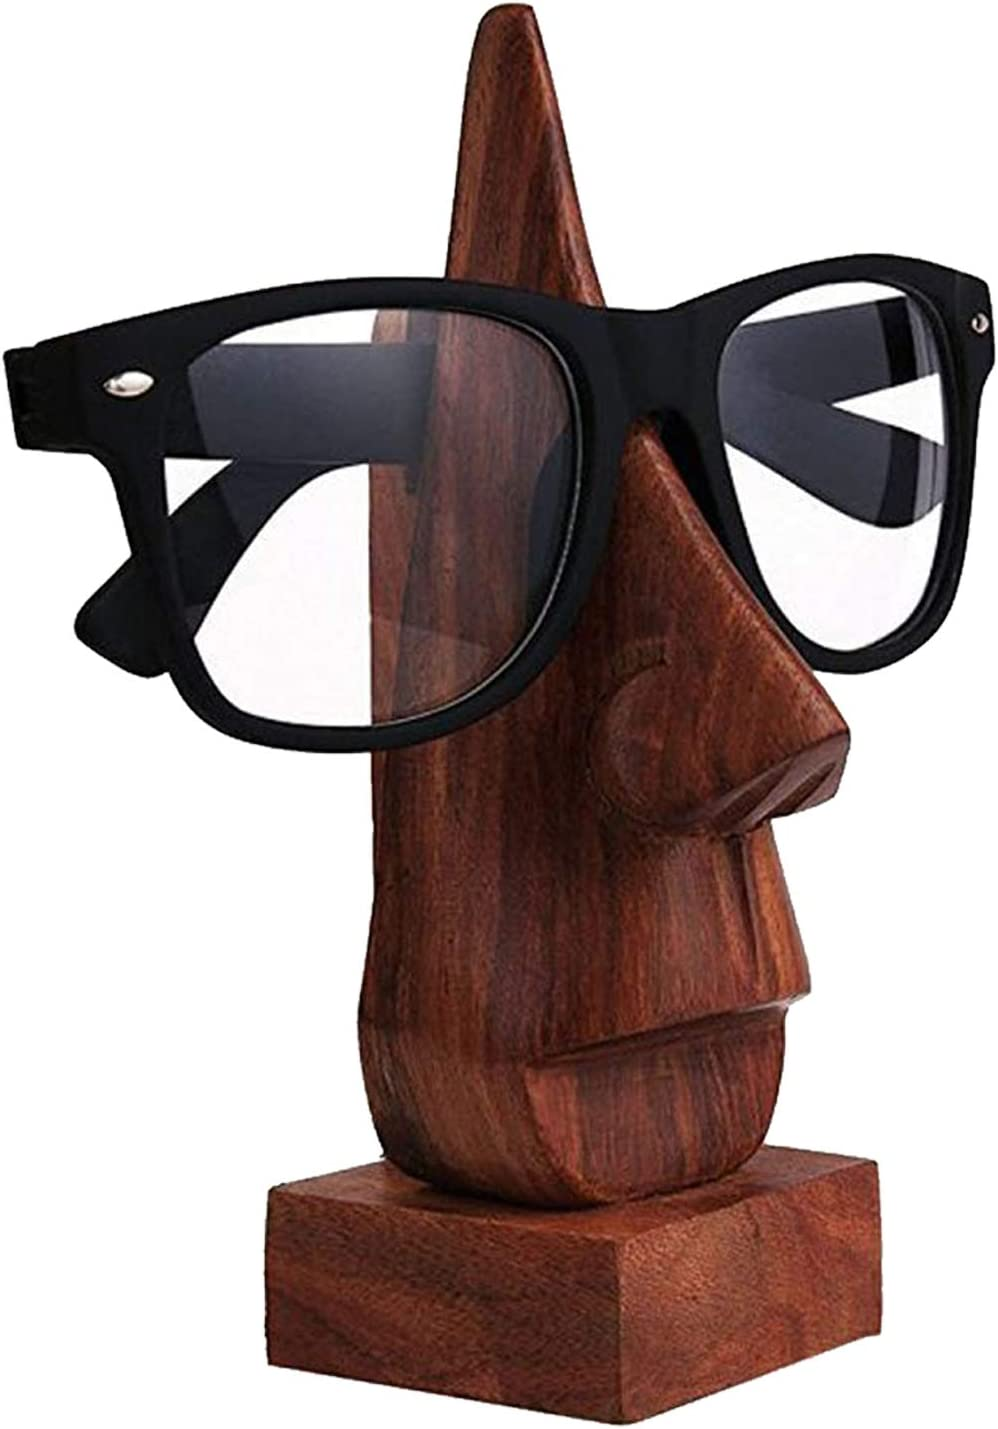 WhopperOnline classic hand made sheesham wood nose shaped Spectacle / Eyeglass display holder stand decorative for home and office (Brown, 6 inch), Birthday and Thanksgiving witty item for loved ones